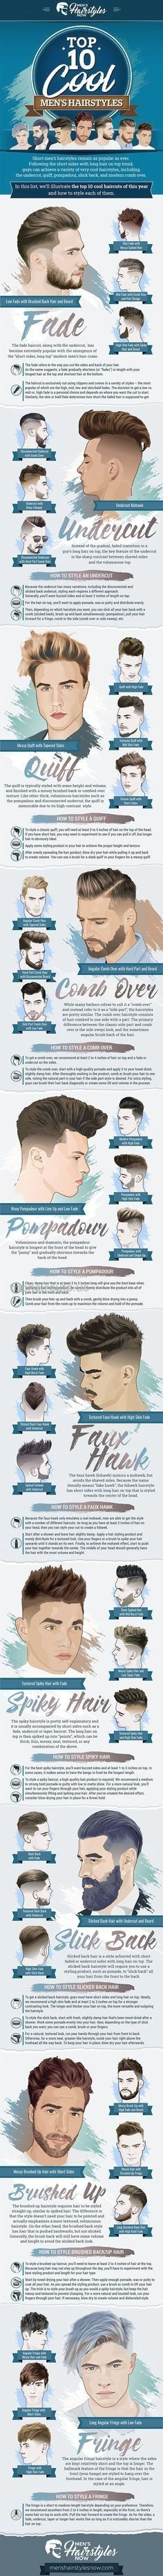 Infographic: Trendiest Hairstyles For Men In 2017 – DesignTAXI.com… Infographic: Trendiest Hairstyles For Men In 2017 – DesignTAXI.com  http://www.tophaircuts.us/2017/05/04/infographic-trendiest-hairstyles-for-men-in-2017-designtaxi-com-3/